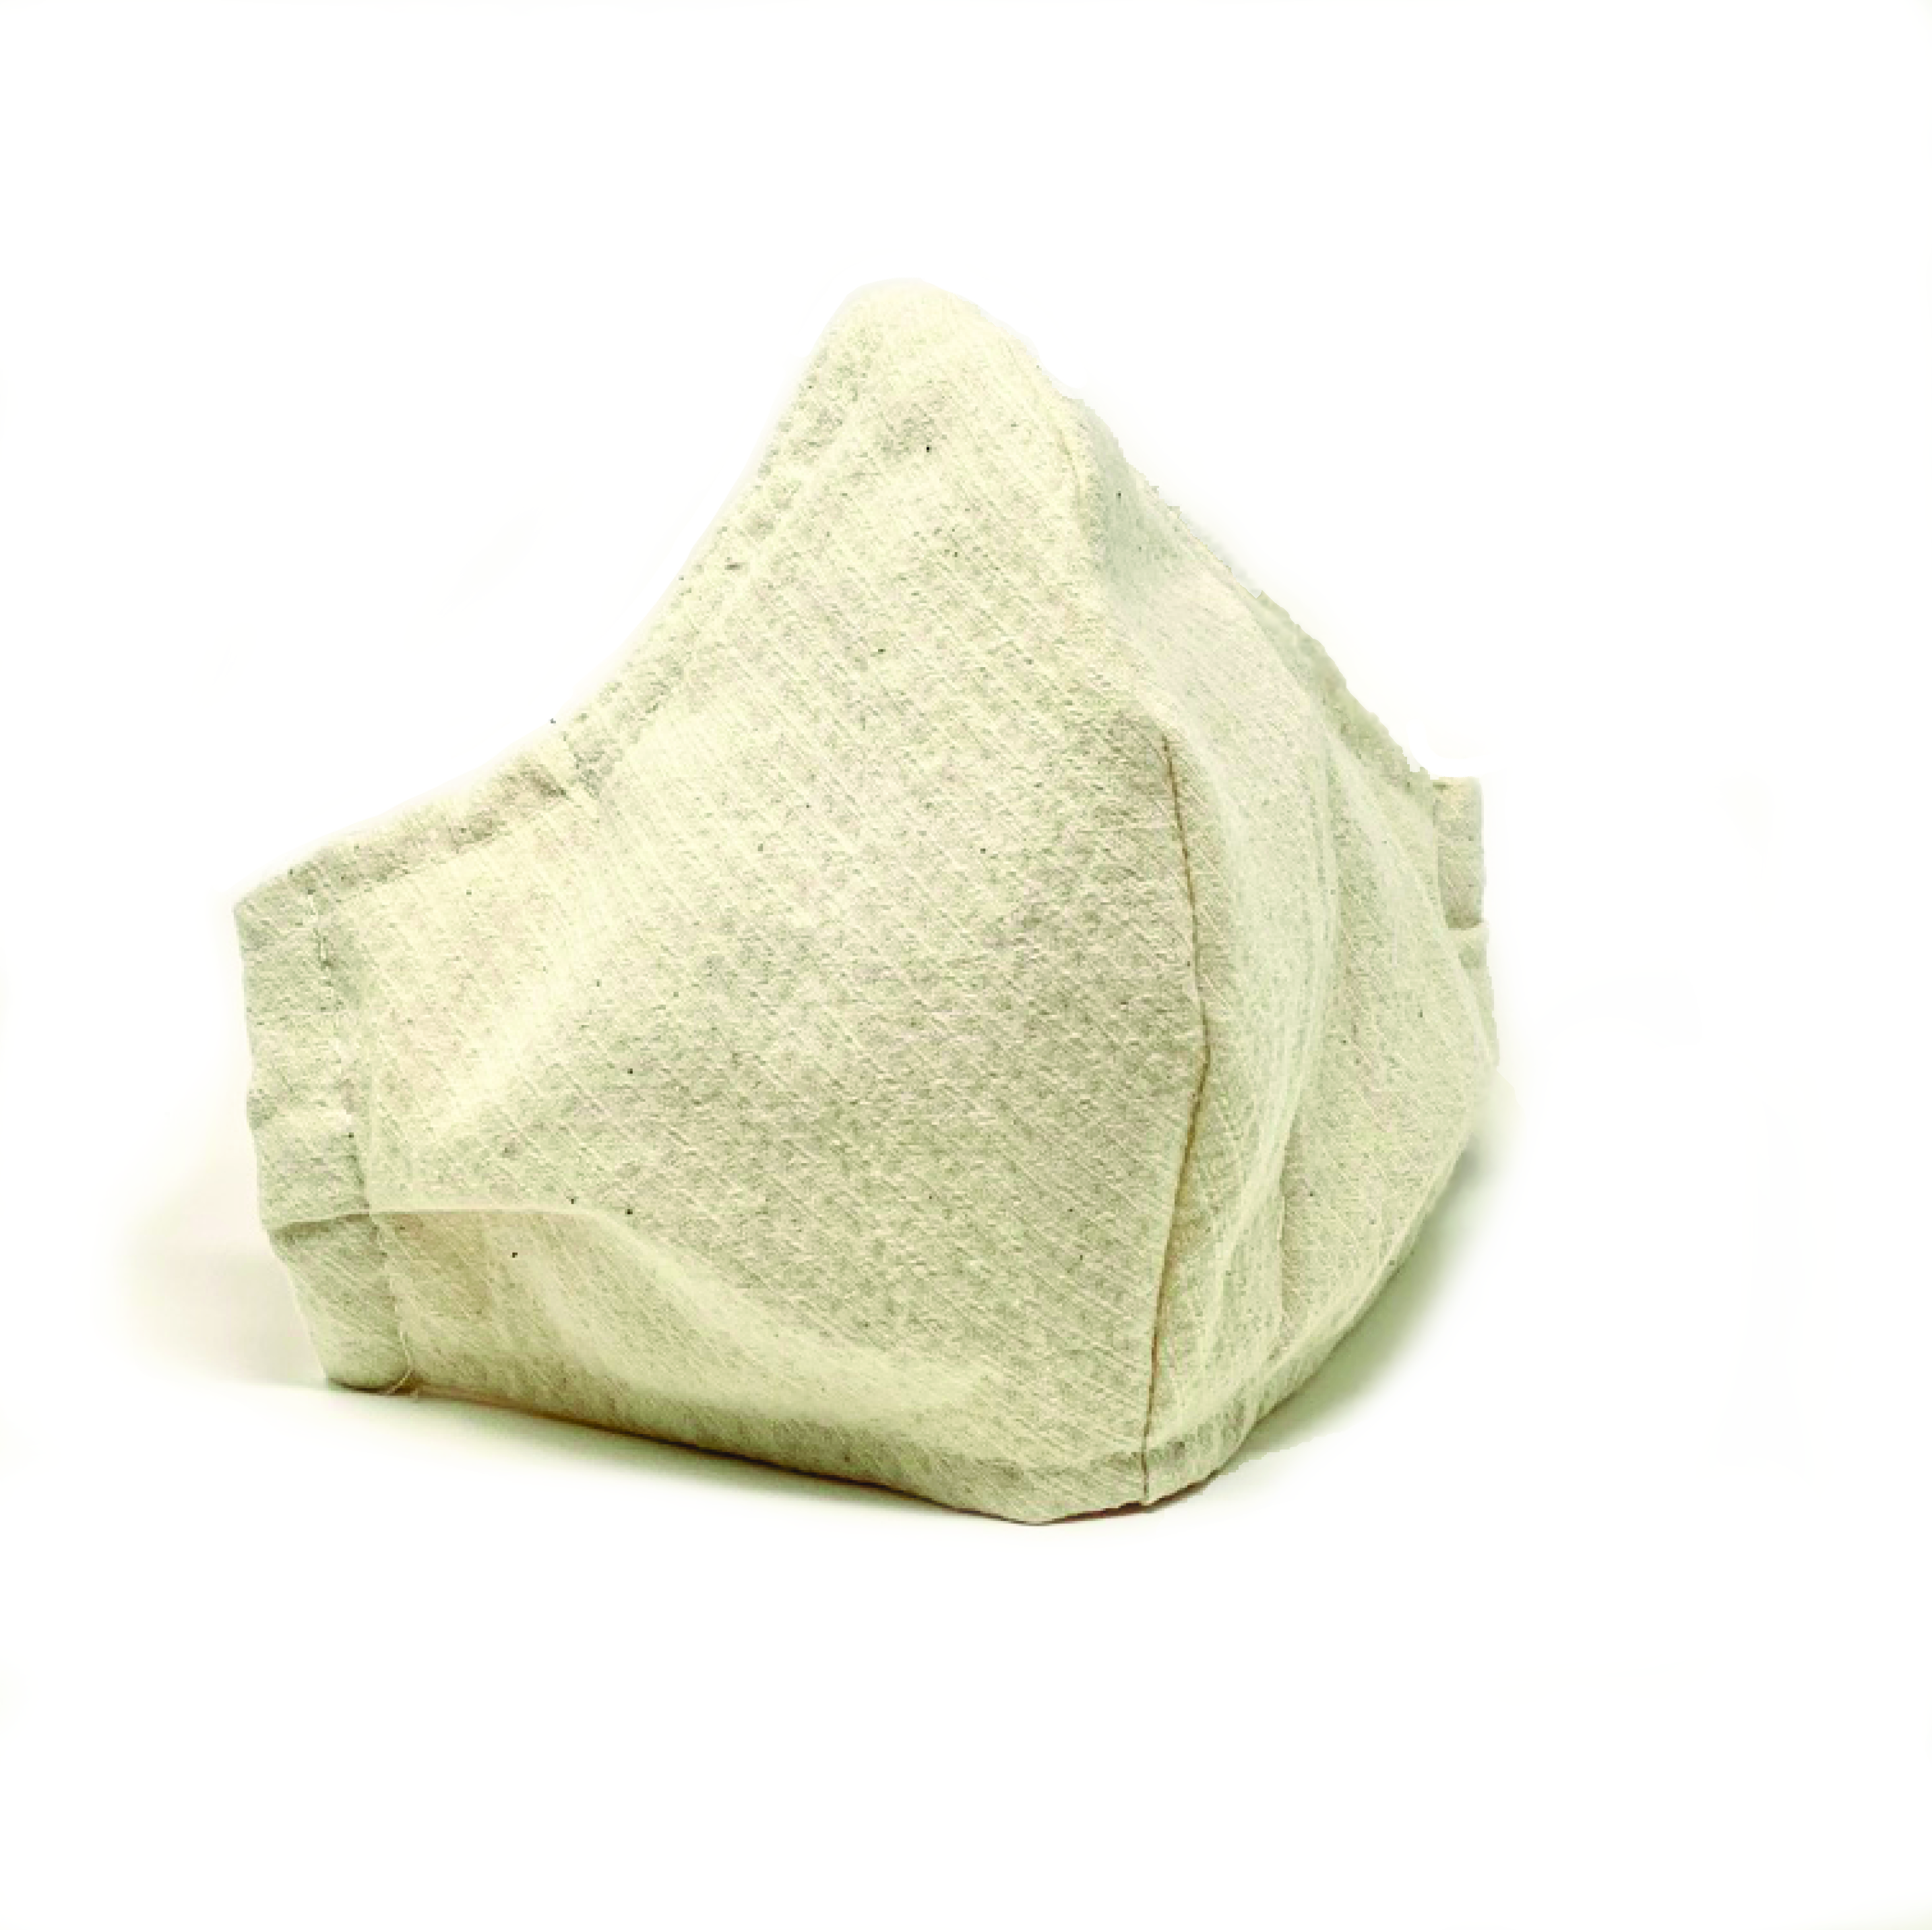 Organic Cotton Face Mask